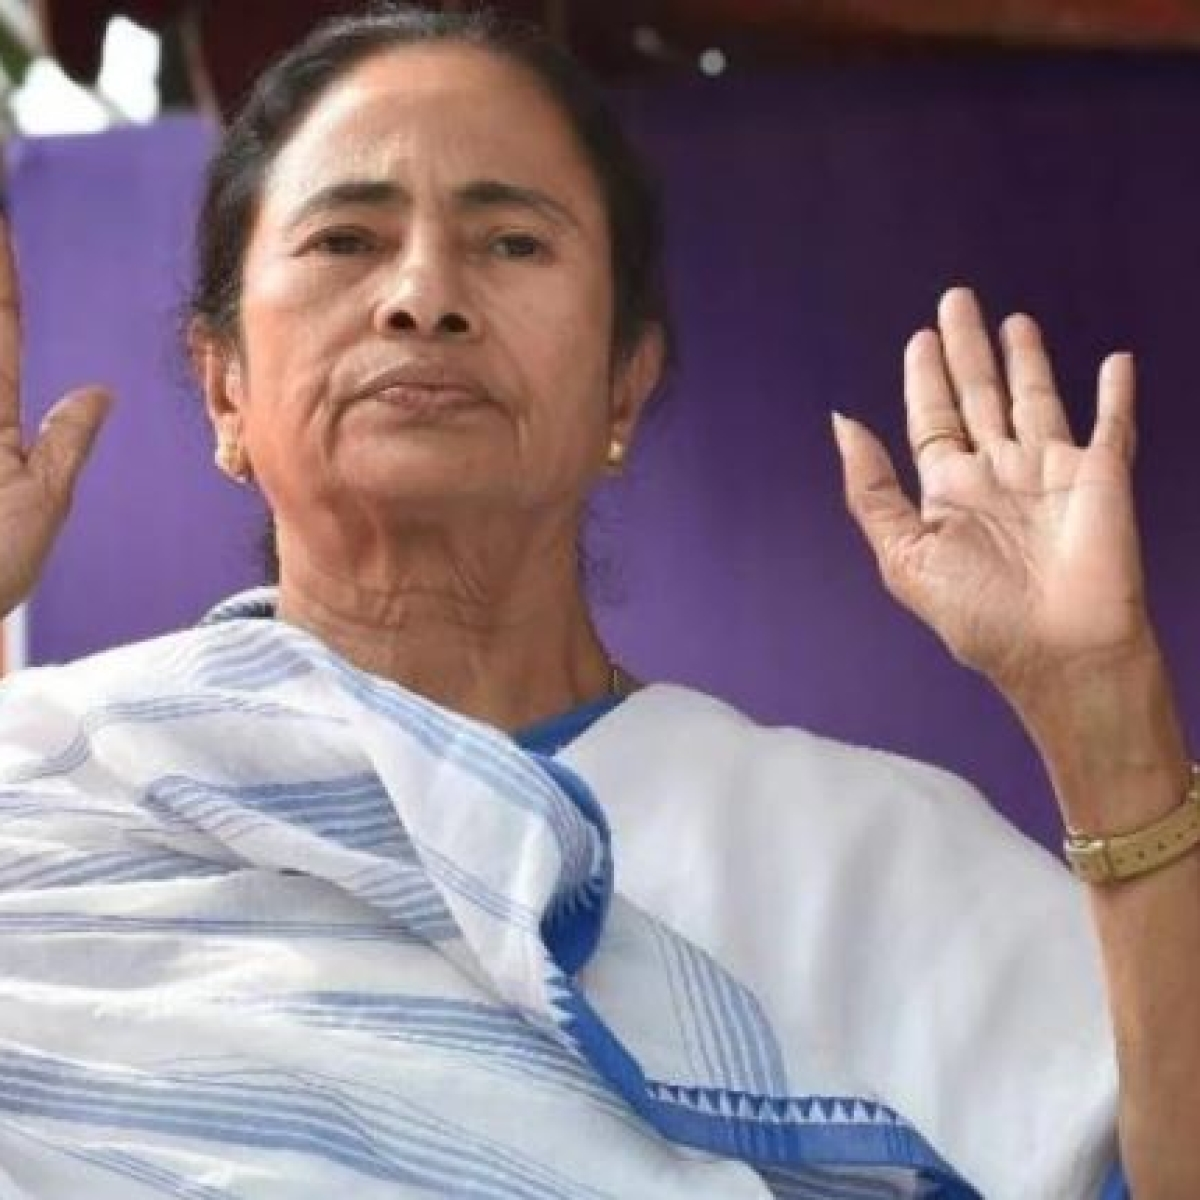 'Irony just died a thousand deaths': Twitter criticises Mamata Banerjee over post calling media 'fourth pillar' of democracy